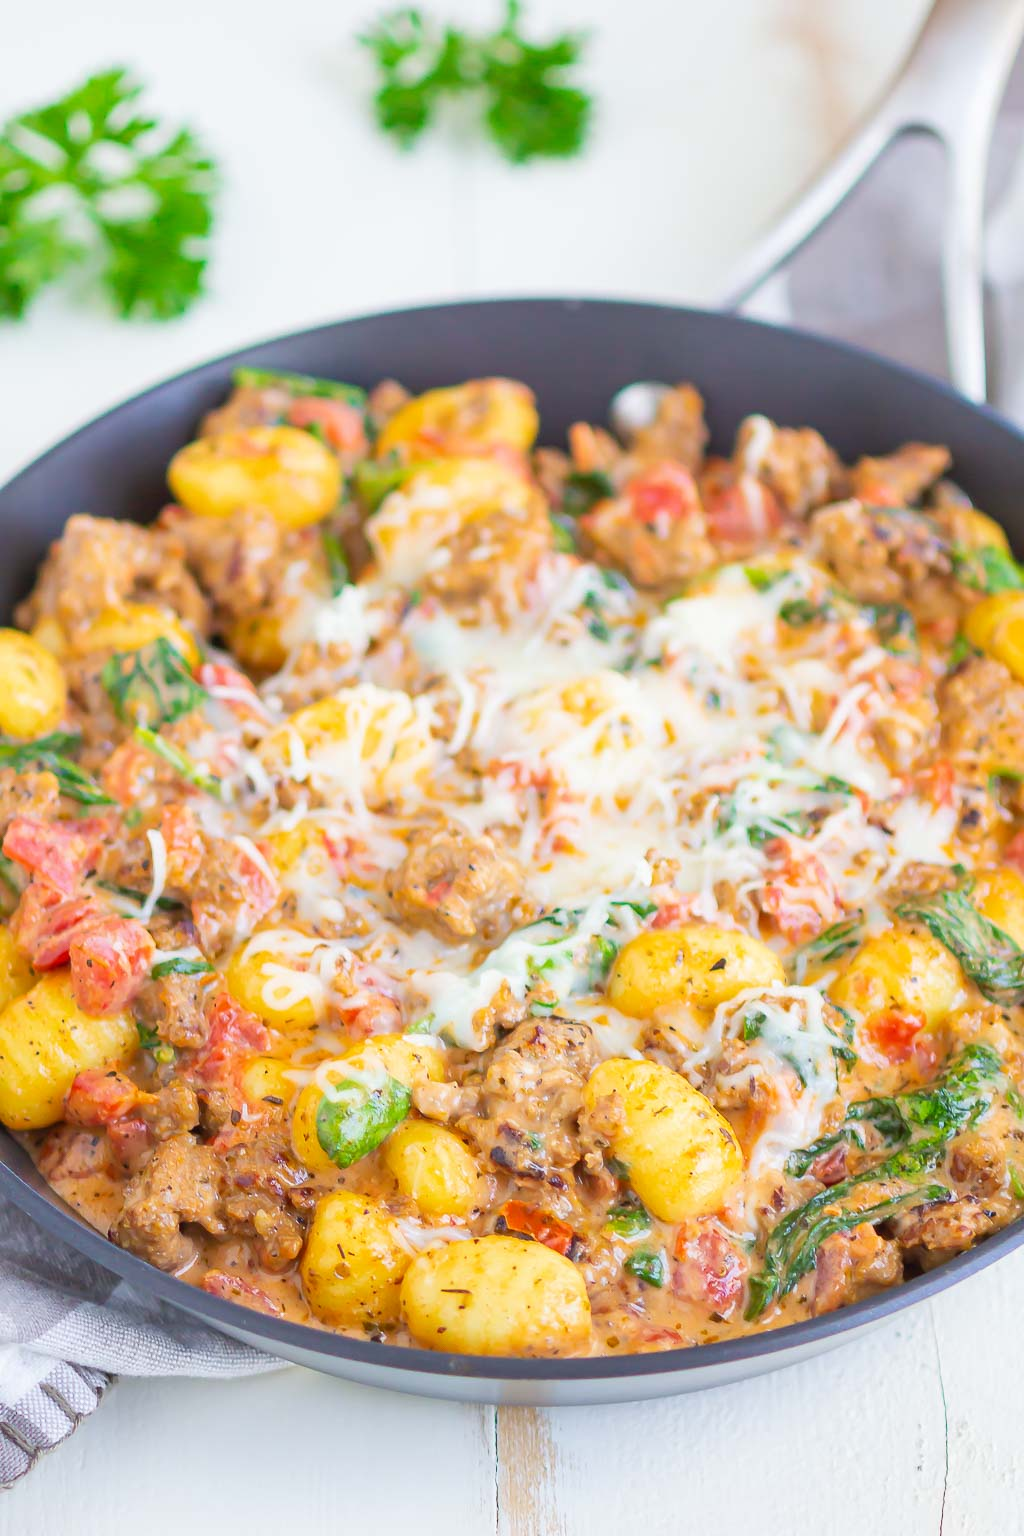 A skillet of Italian sausage gnocchi, topped with shredded mozzarella cheese.